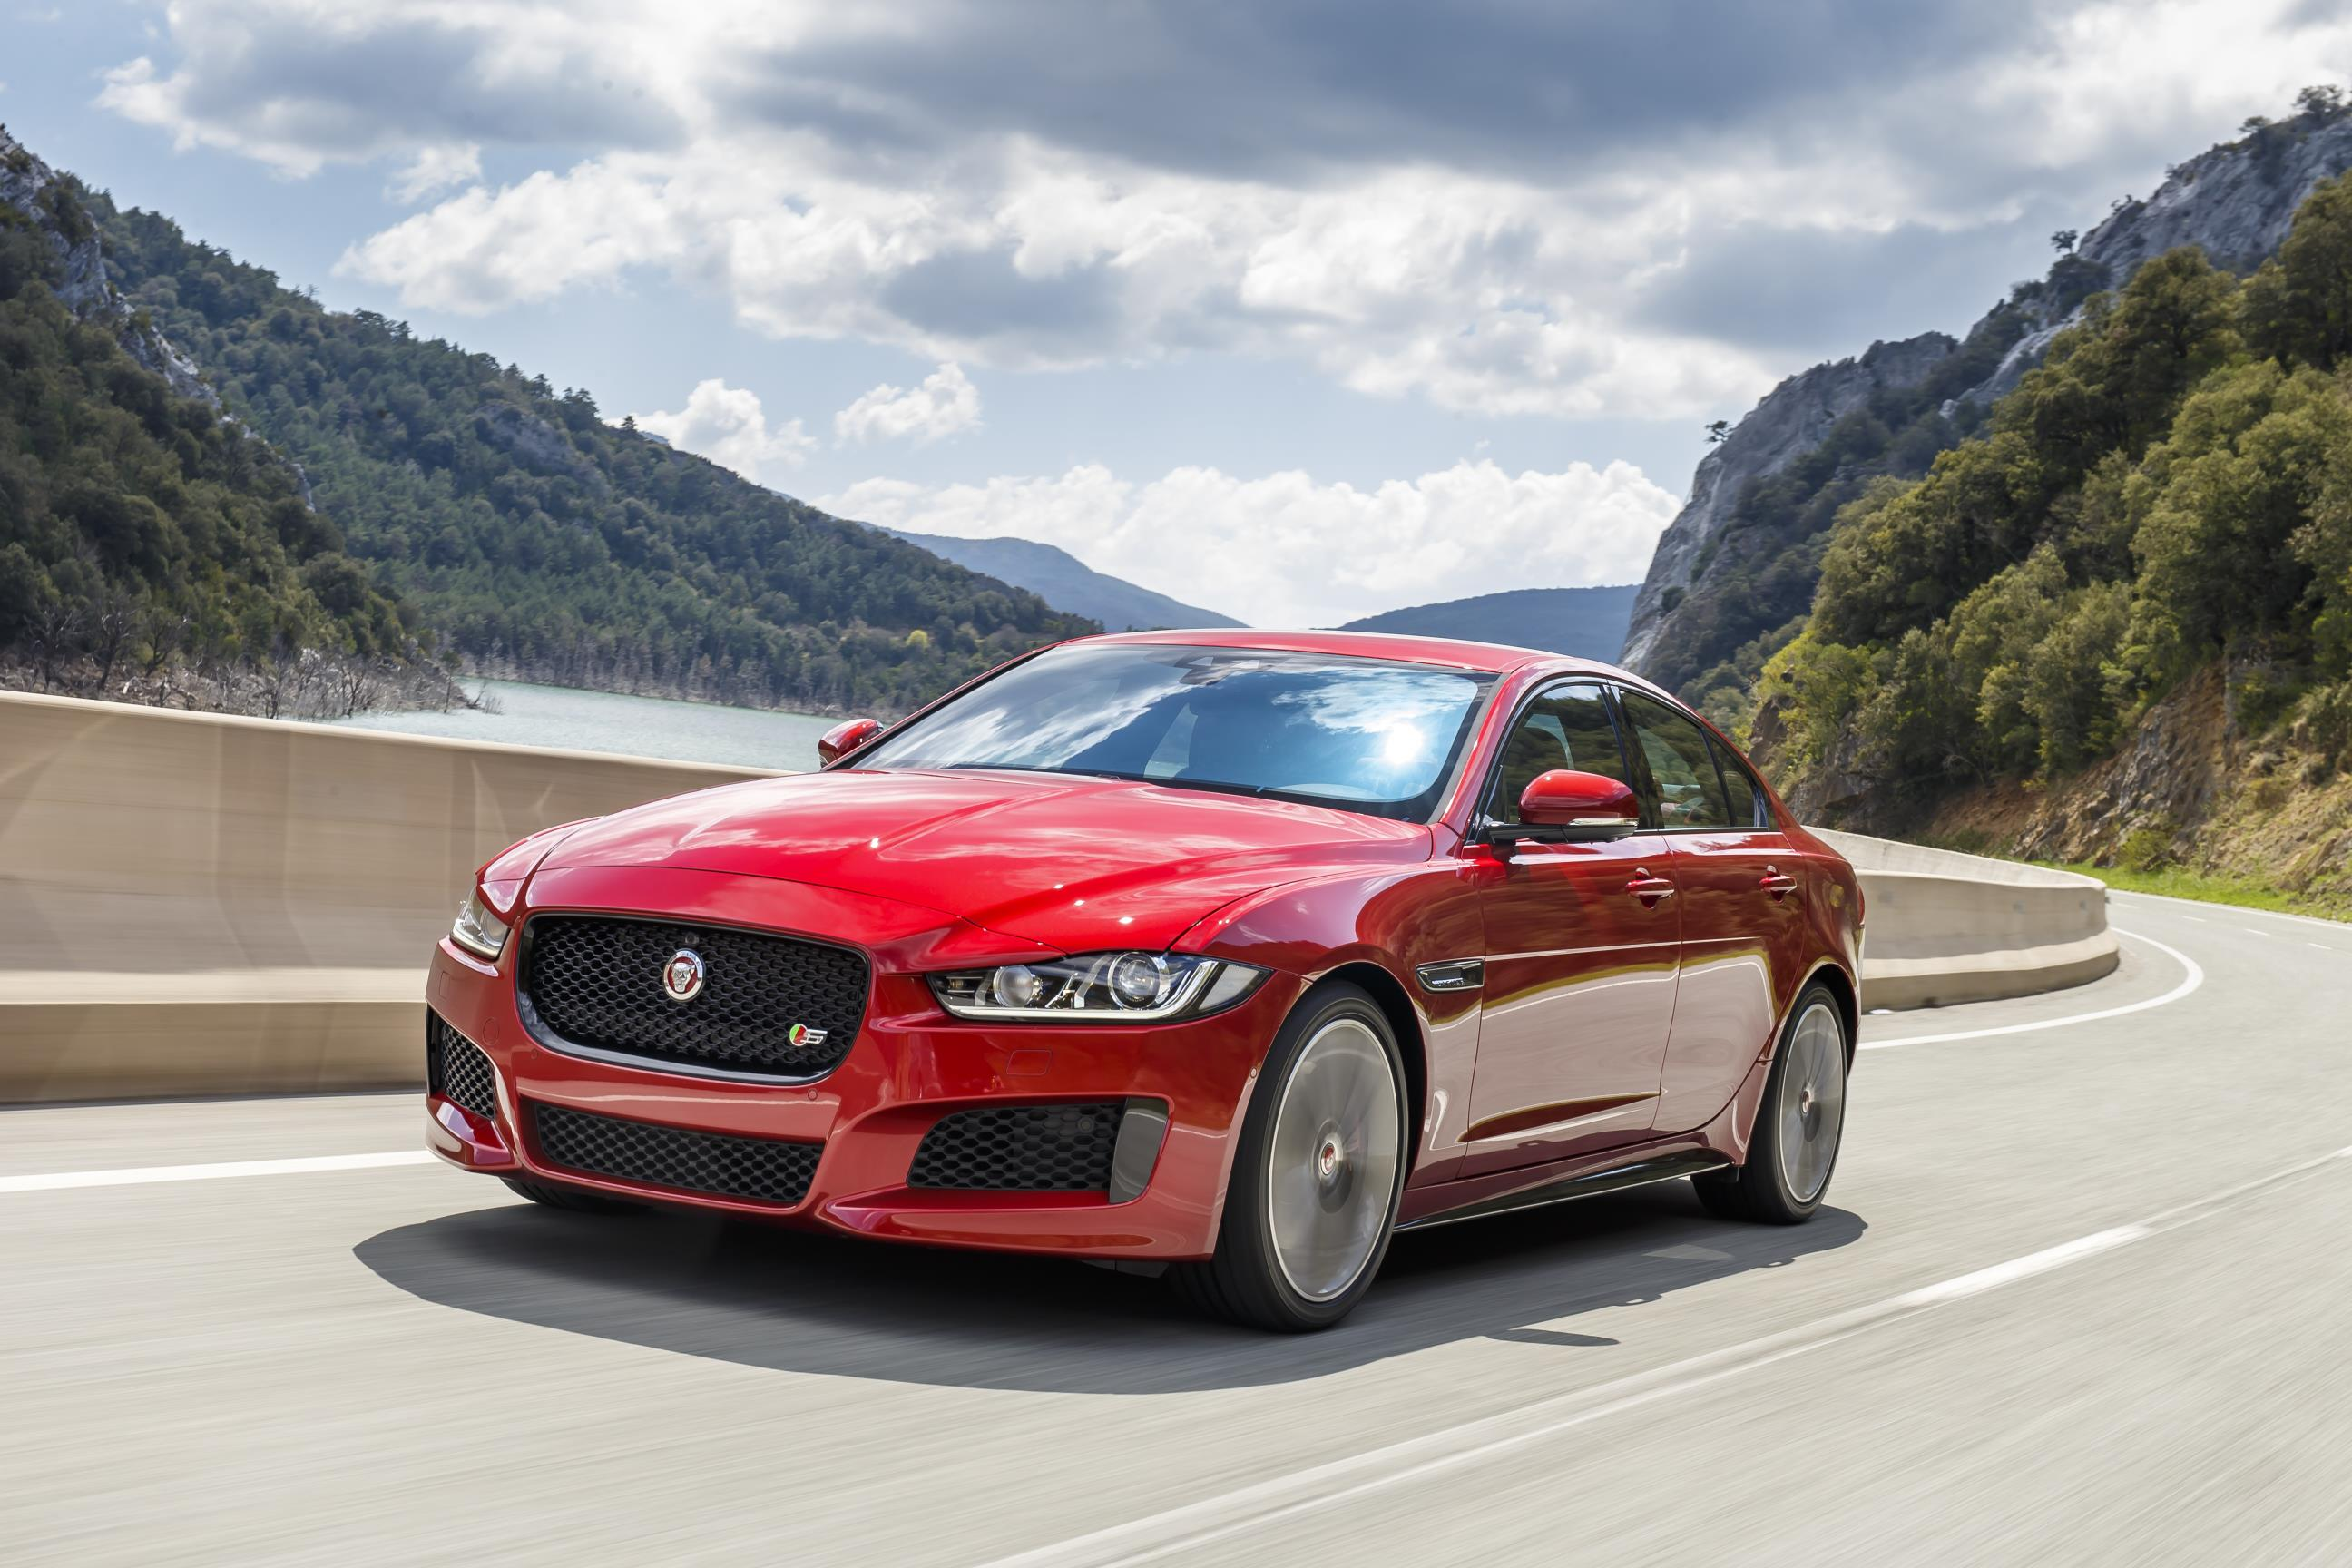 New 296bhp petrol engine for Jaguar XE, XF and F-PACE